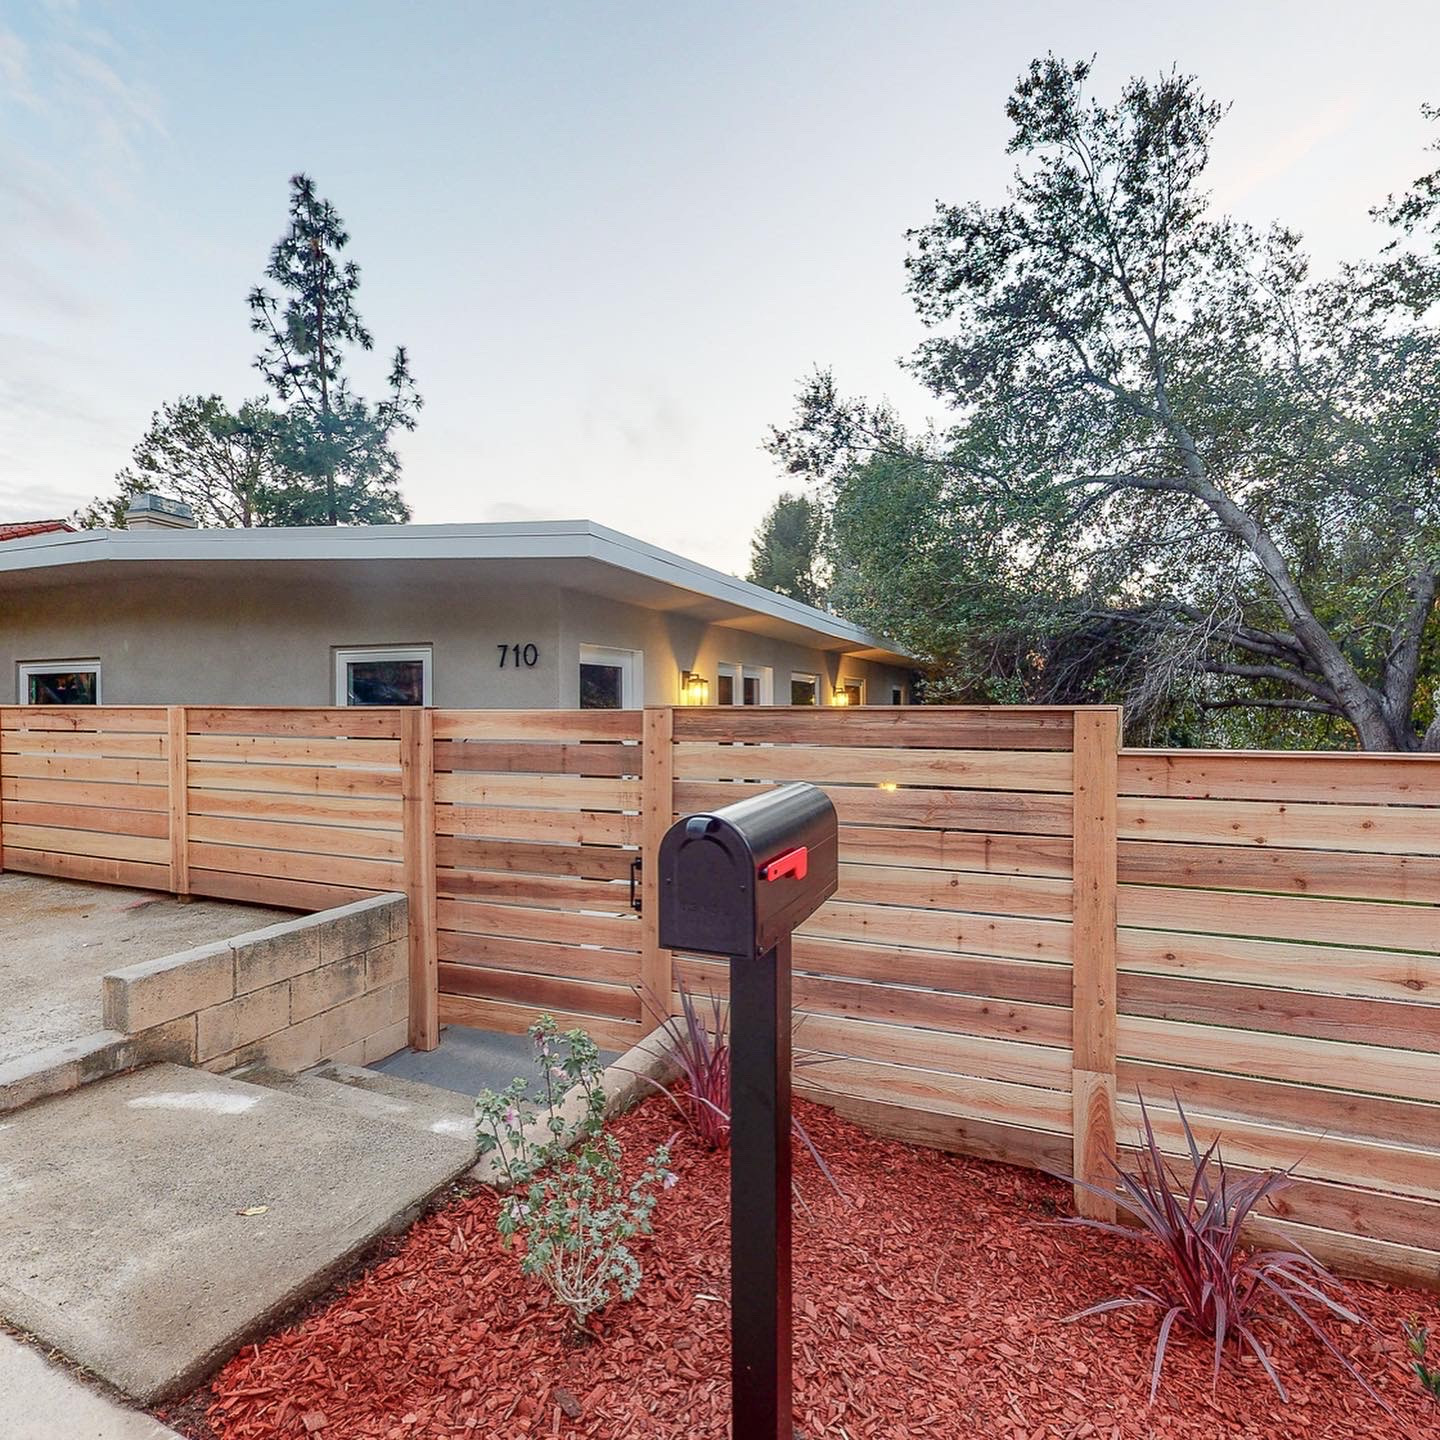 Full Interior Remodel and Exterior Wood Slat Privacy Fence